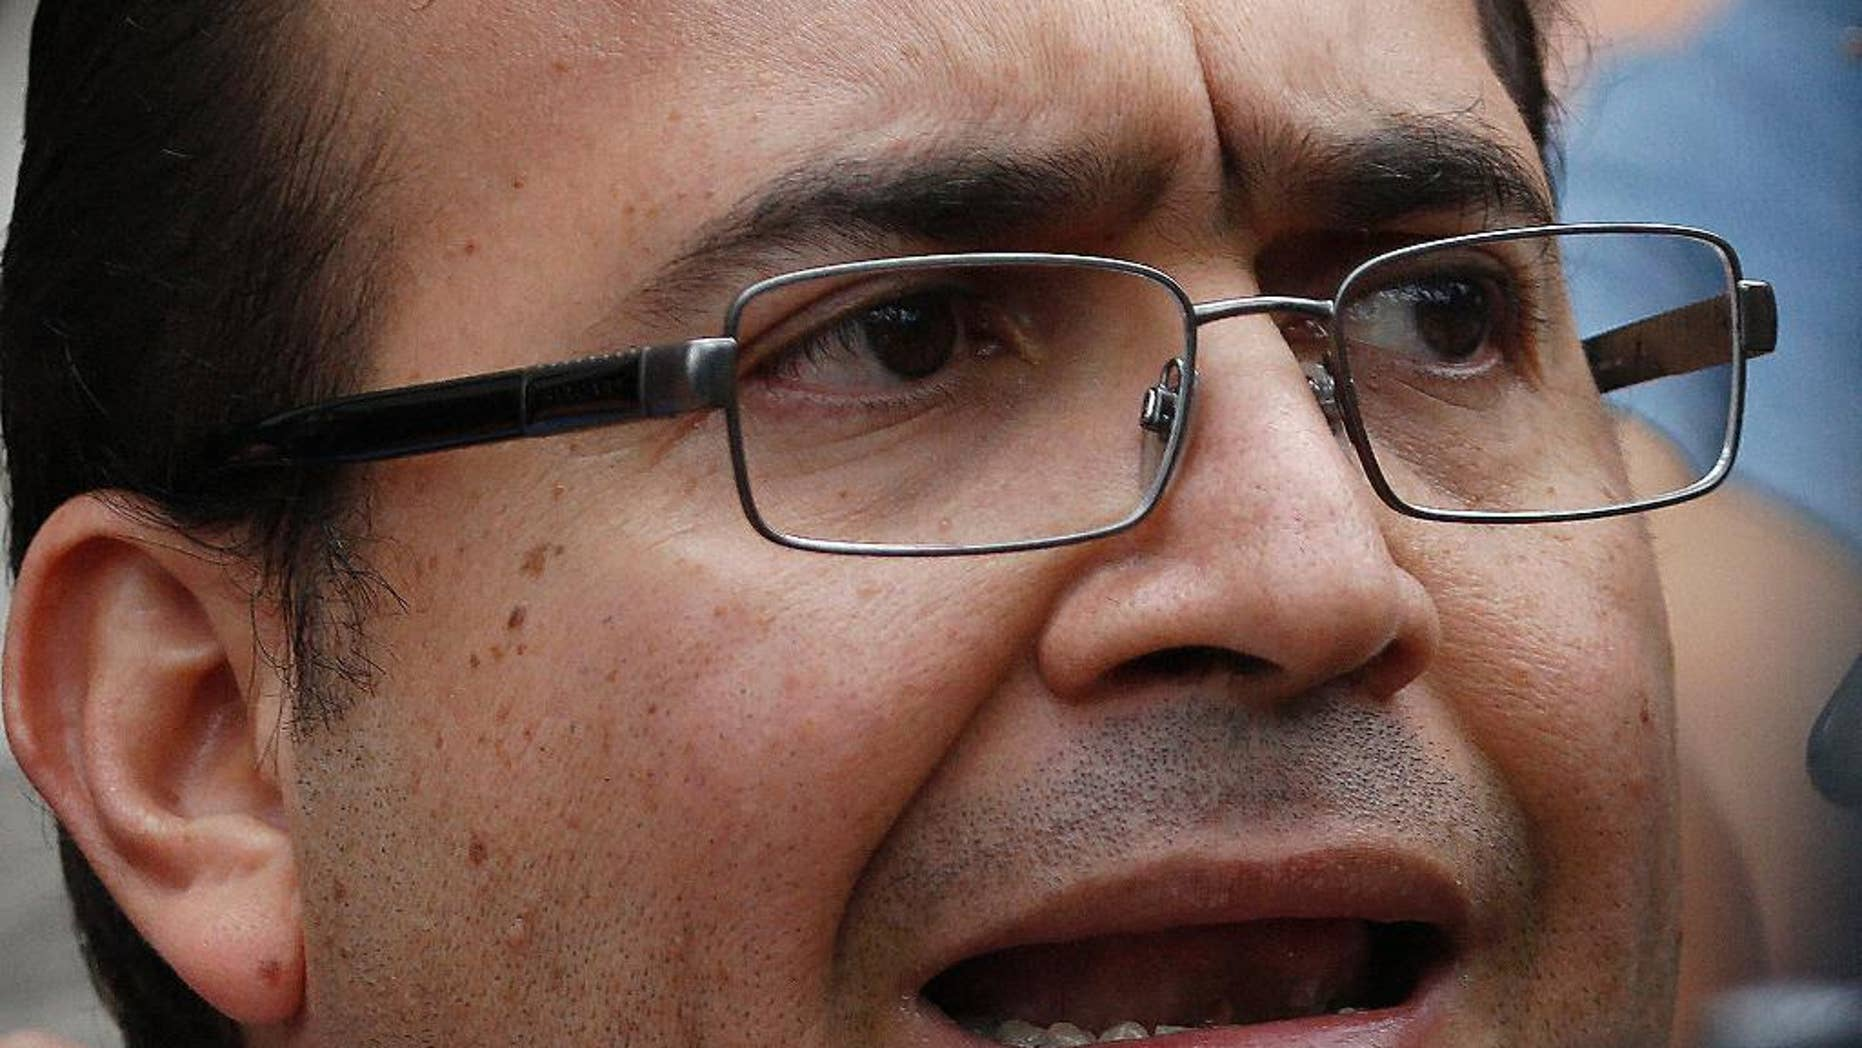 FILE - In this Aug. 5, 2016, file photo, the former Governor of Veracruz state, Javier Duarte speaks to reporters as he leaves the Attorney General's headquarters in Mexico City. The Authorities announced Sunday, Nov. 13 that the government has frozen 112 bank accounts and temporarily seized four properties and five businesses linked Duarte, who is facing charges of money laundering and organized crime. (AP Photo/Marco Ugarte, File)